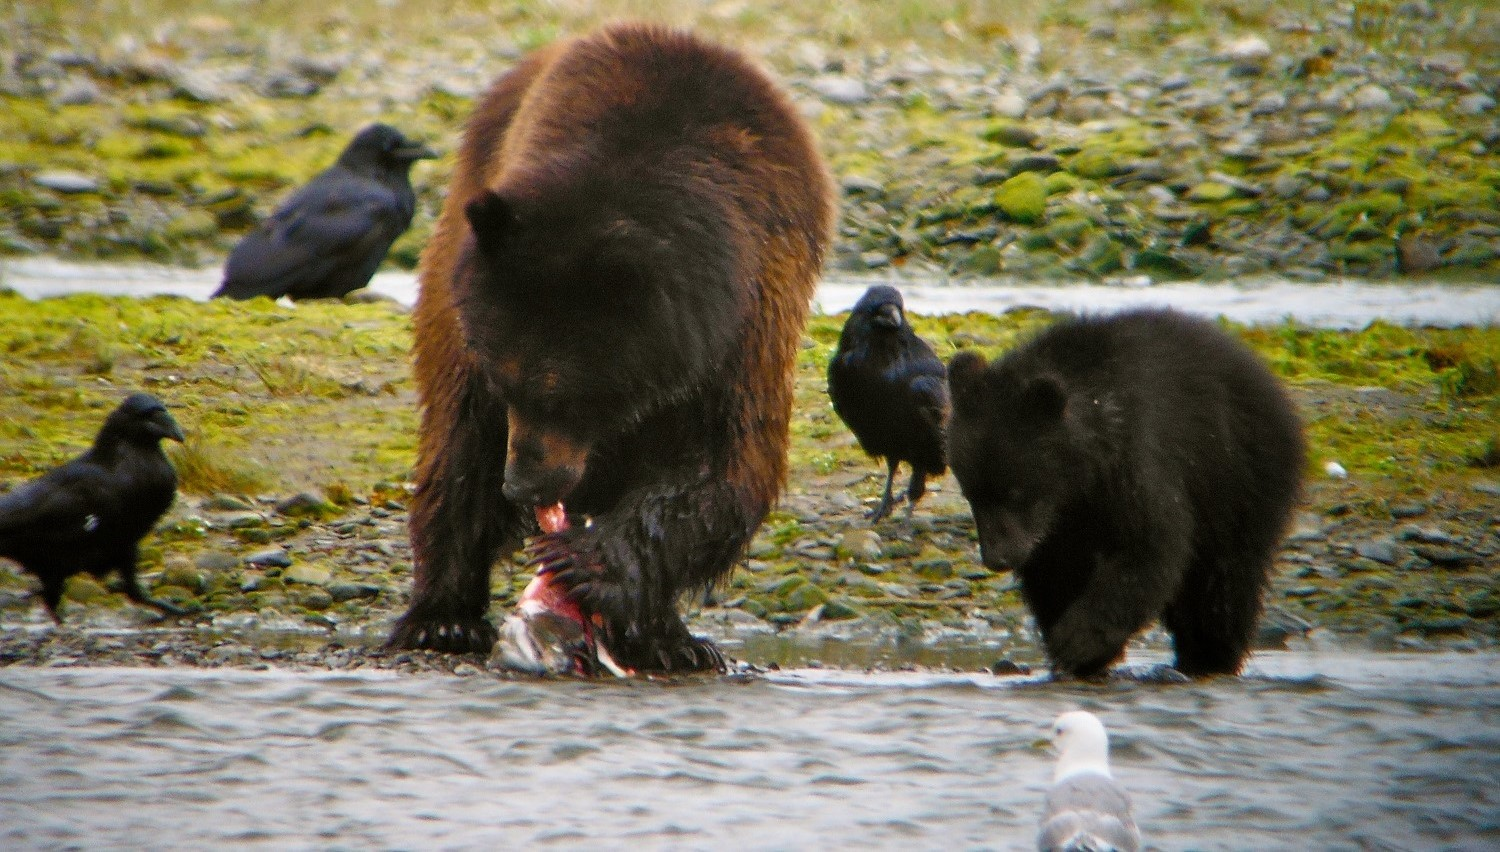 Sow and cub at Pack Creek